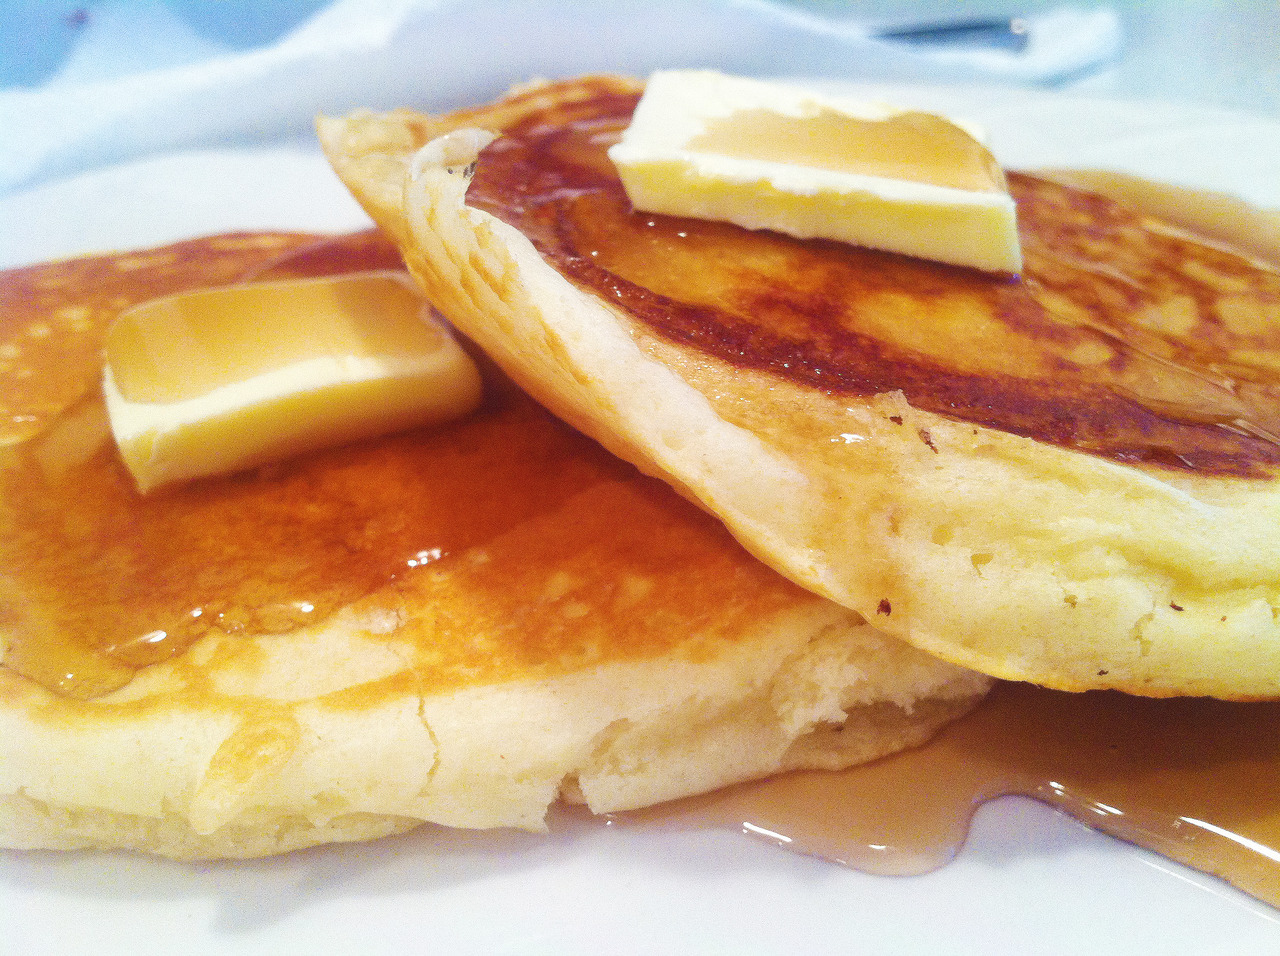 recipzees:  old fashioned pancakes! there's nothing more gratifying than eating delicious pancakes and knowing they didn't come out of a box. delicious! this recipe made about 10 pancakes. tip: to know your pancakes are ready to flip, the top of the pancake will start to bubble a bit total amount of time: ~30 minutes INGREDIENTS 1 1/2 cups all-purpose flour  3 1/2 teaspoons baking powder  1/4 teaspoon salt  1 tablespoon white sugar  1 1/4 cups milk  1 egg  3 tablespoons butter, melted DIRECTIONS  In a large bowl, sift together the flour, baking powder, salt and sugar. Make a well in the center and pour in the milk, egg and melted butter; mix until smooth. Heat a lightly oiled griddle or frying pan over medium high heat. Pour or scoop the batter onto the griddle, using approximately 1/4 cup for each pancake. Brown on both sides and serve hot.